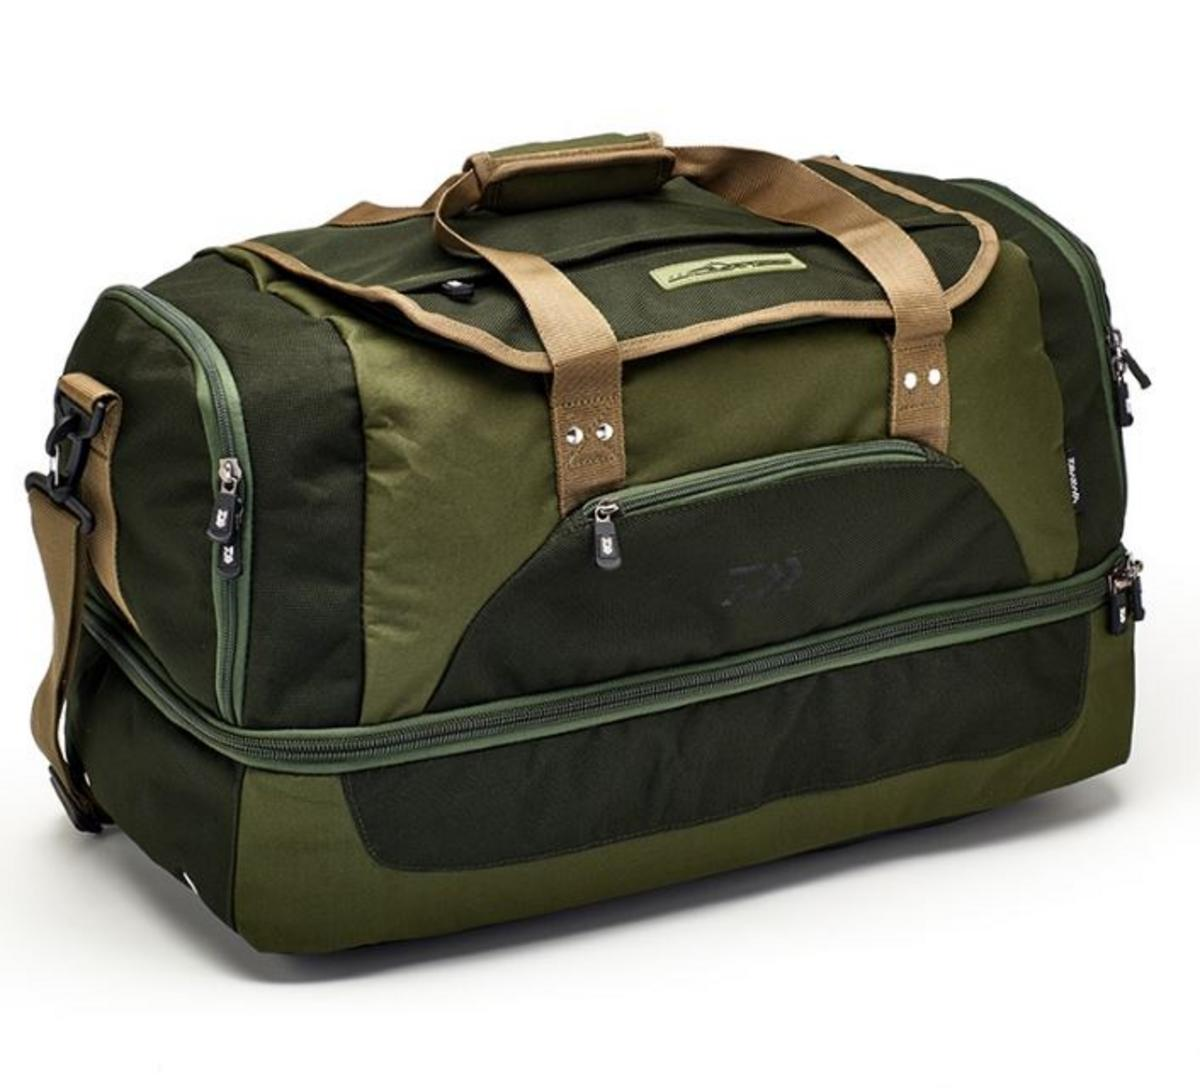 Ex Display New Daiwa Wilderness Game Fishing Bag 5 - Model - DWGB5